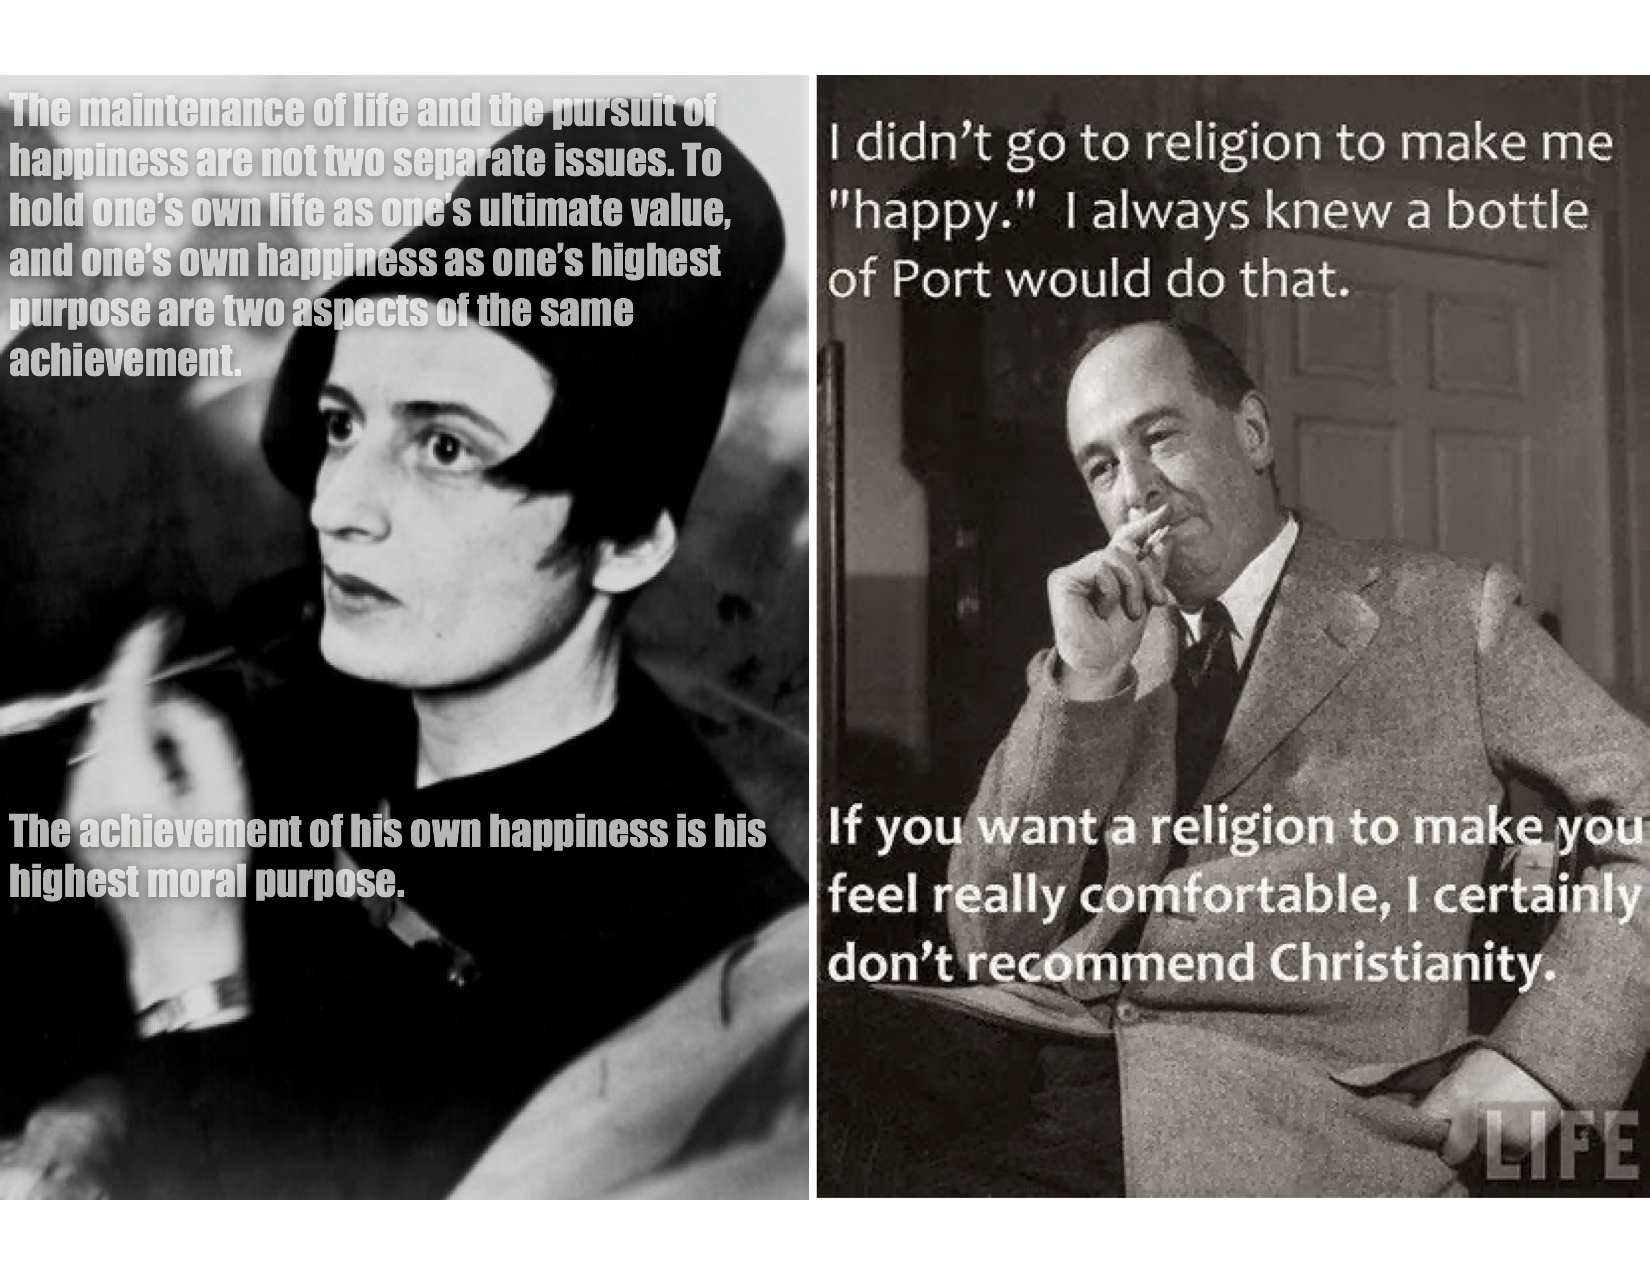 Rand Lewis Meme ayn rand, c s lewis, and objectivism a faith full life